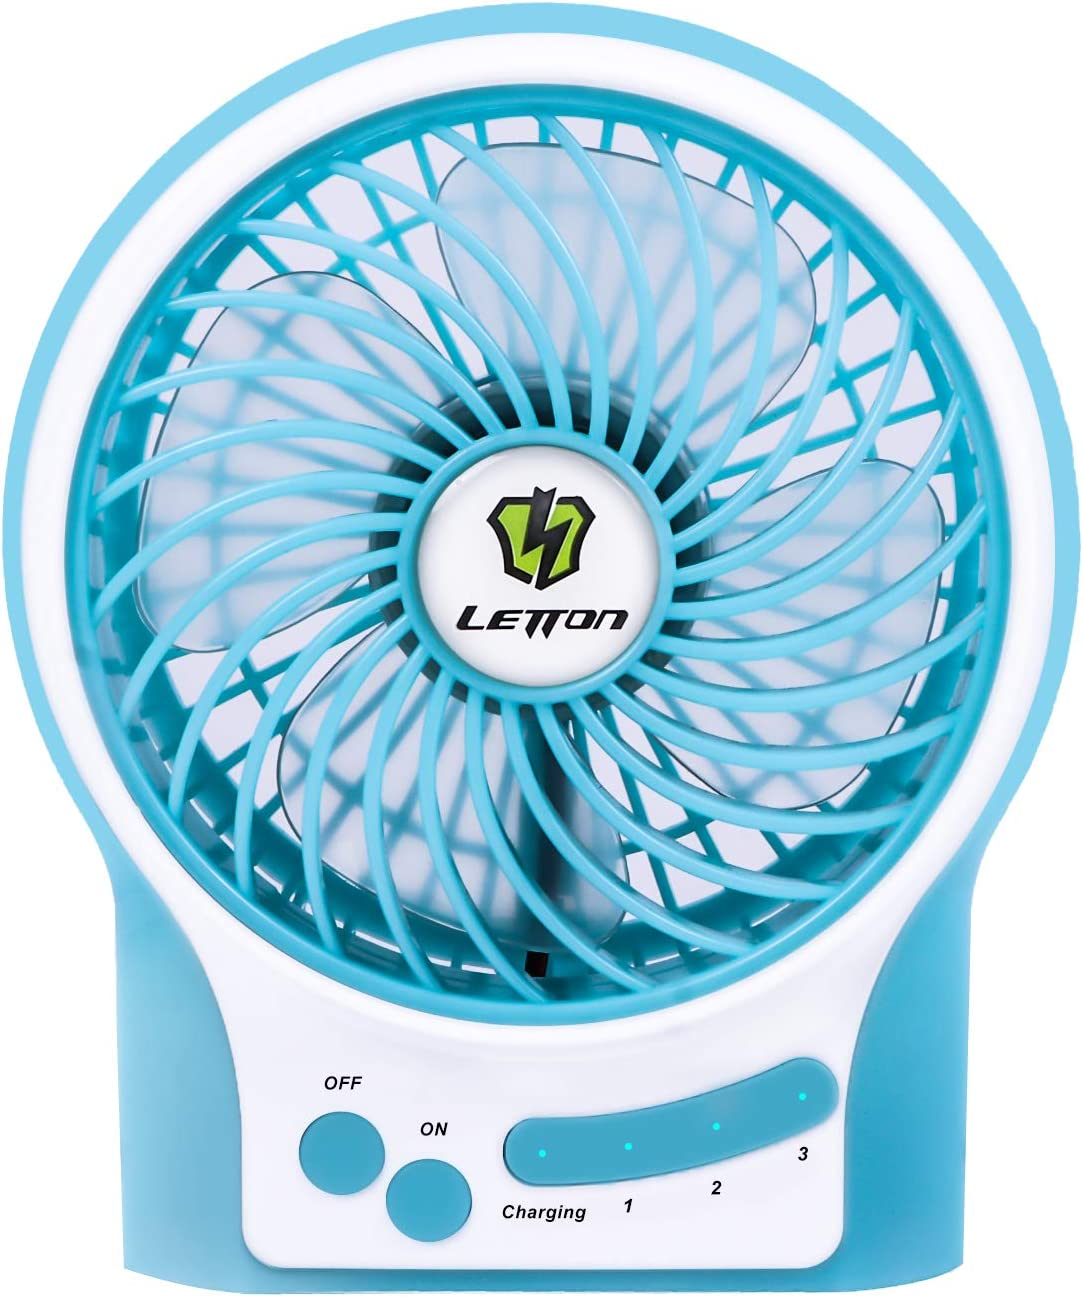 LETTON Portable Mini USB Fan Rechargeable Battery with 3 Speed LED Light for Home-Blue